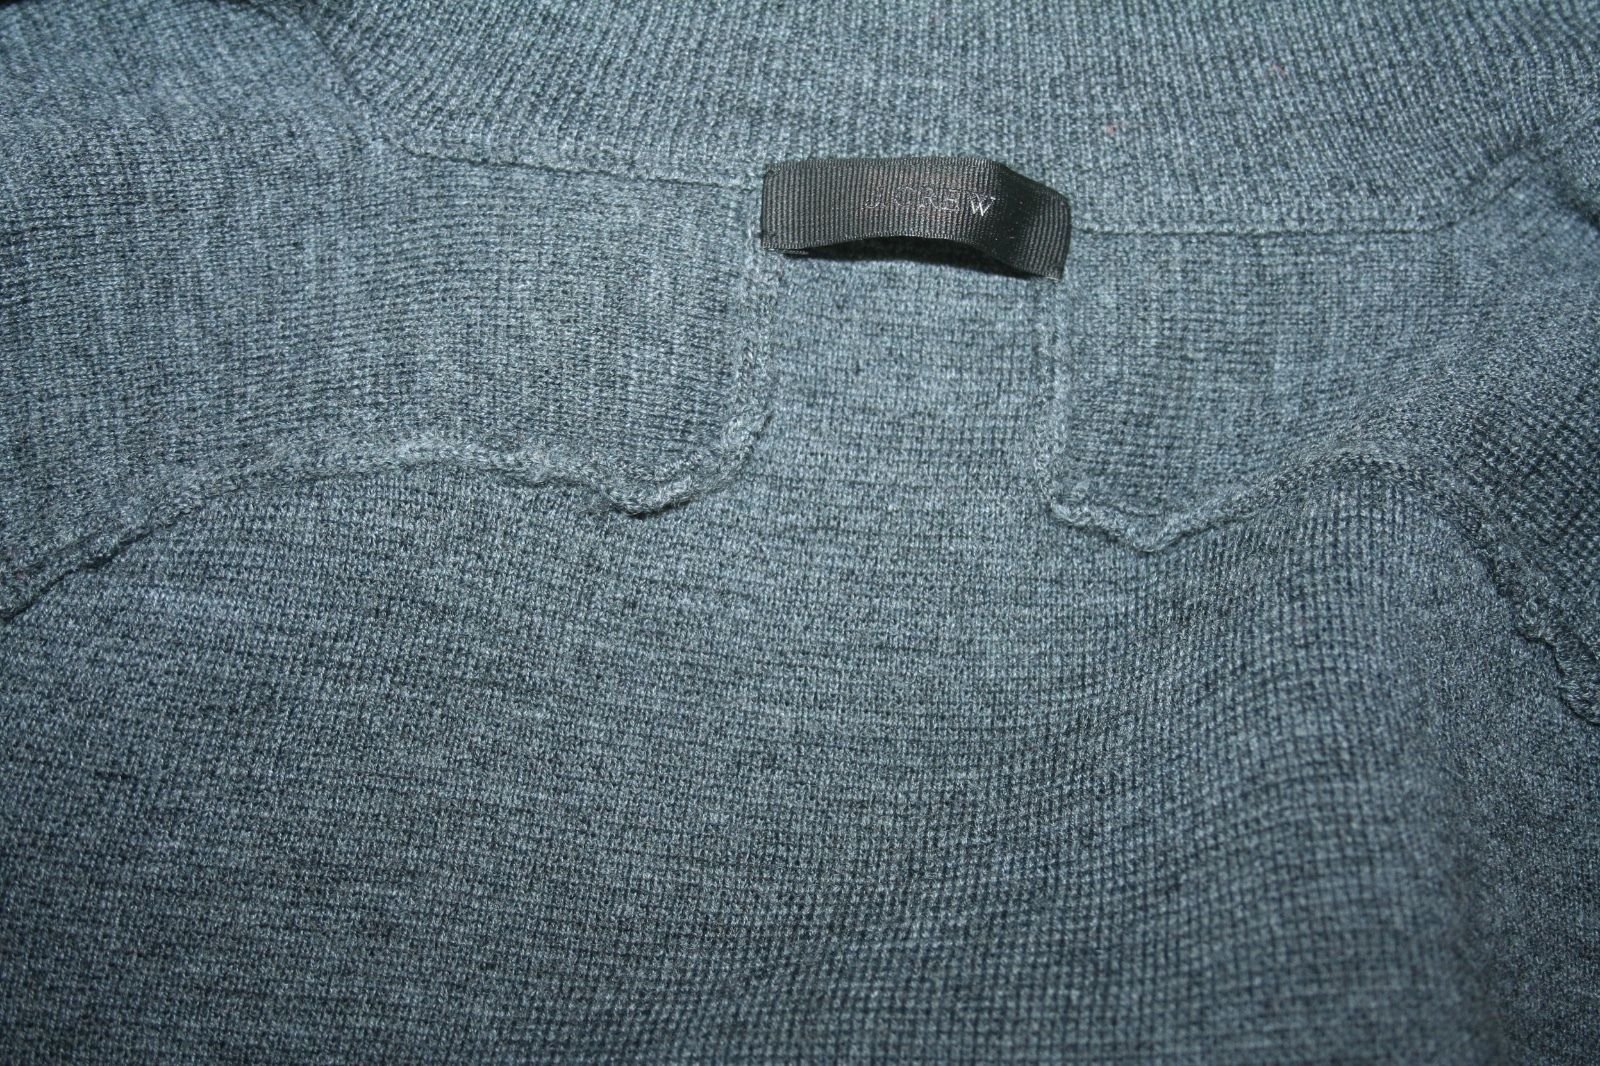 J.CREW COLLECTION CALF HAIR HAIR HAIR PANELS ZIP CARDIGAN SIZE S SAMPLE ONE OF A KIND GREY 8461fa